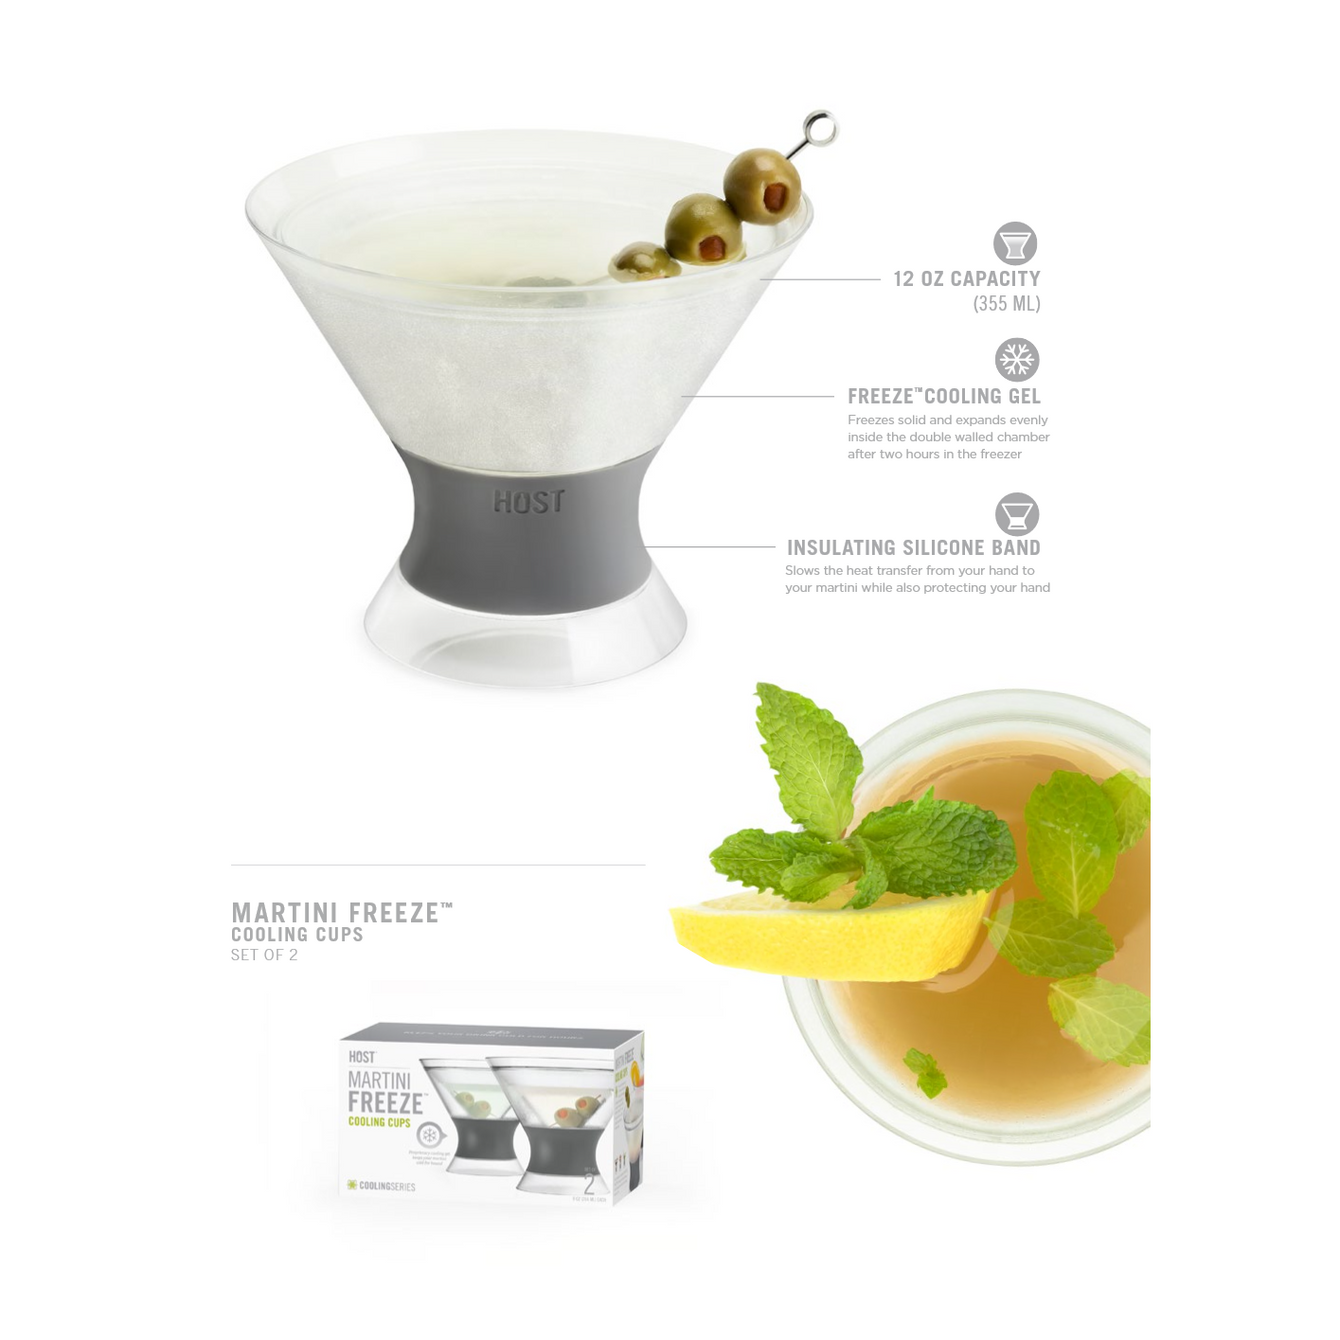 FREEZE Martini Cooling Cups Set of 2-Home - Entertaining - Cocktail Glasses Sets-HOST-Peccadilly